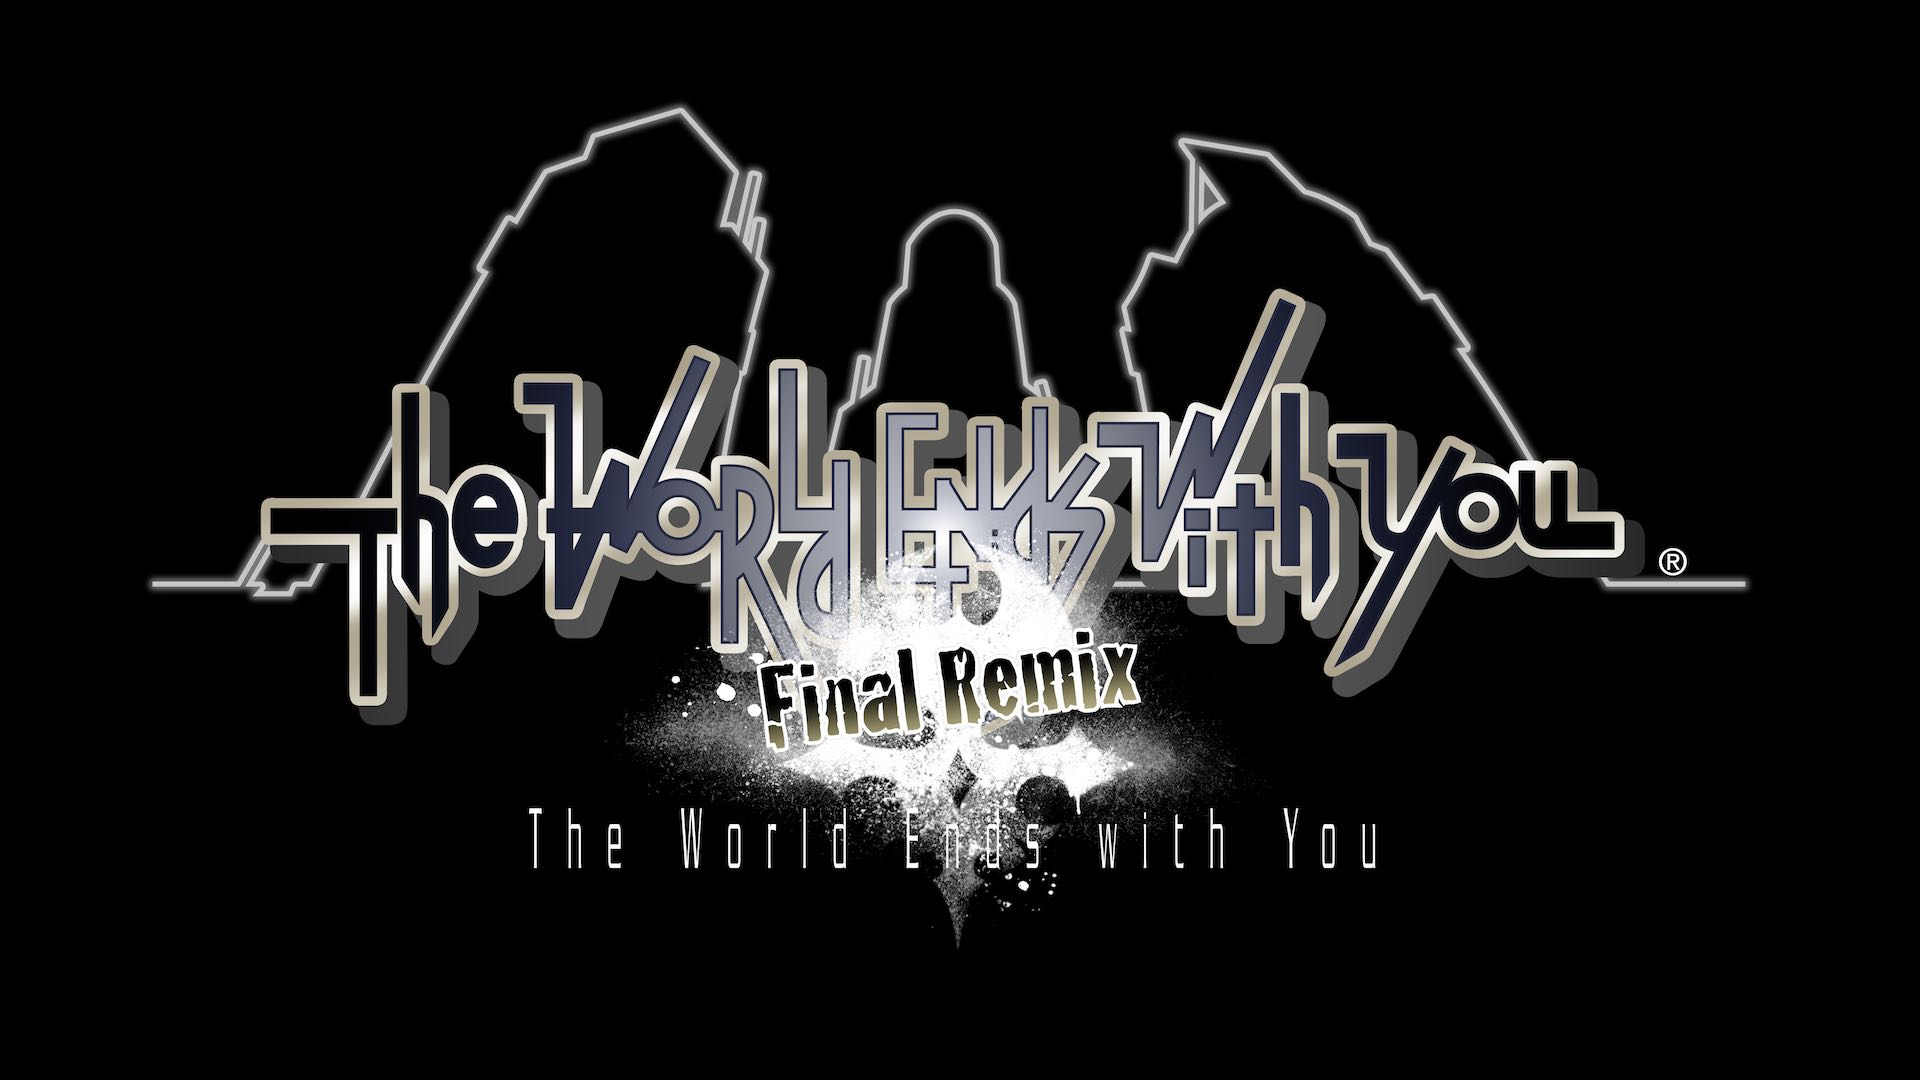 The World Ends With You Returning On Switch